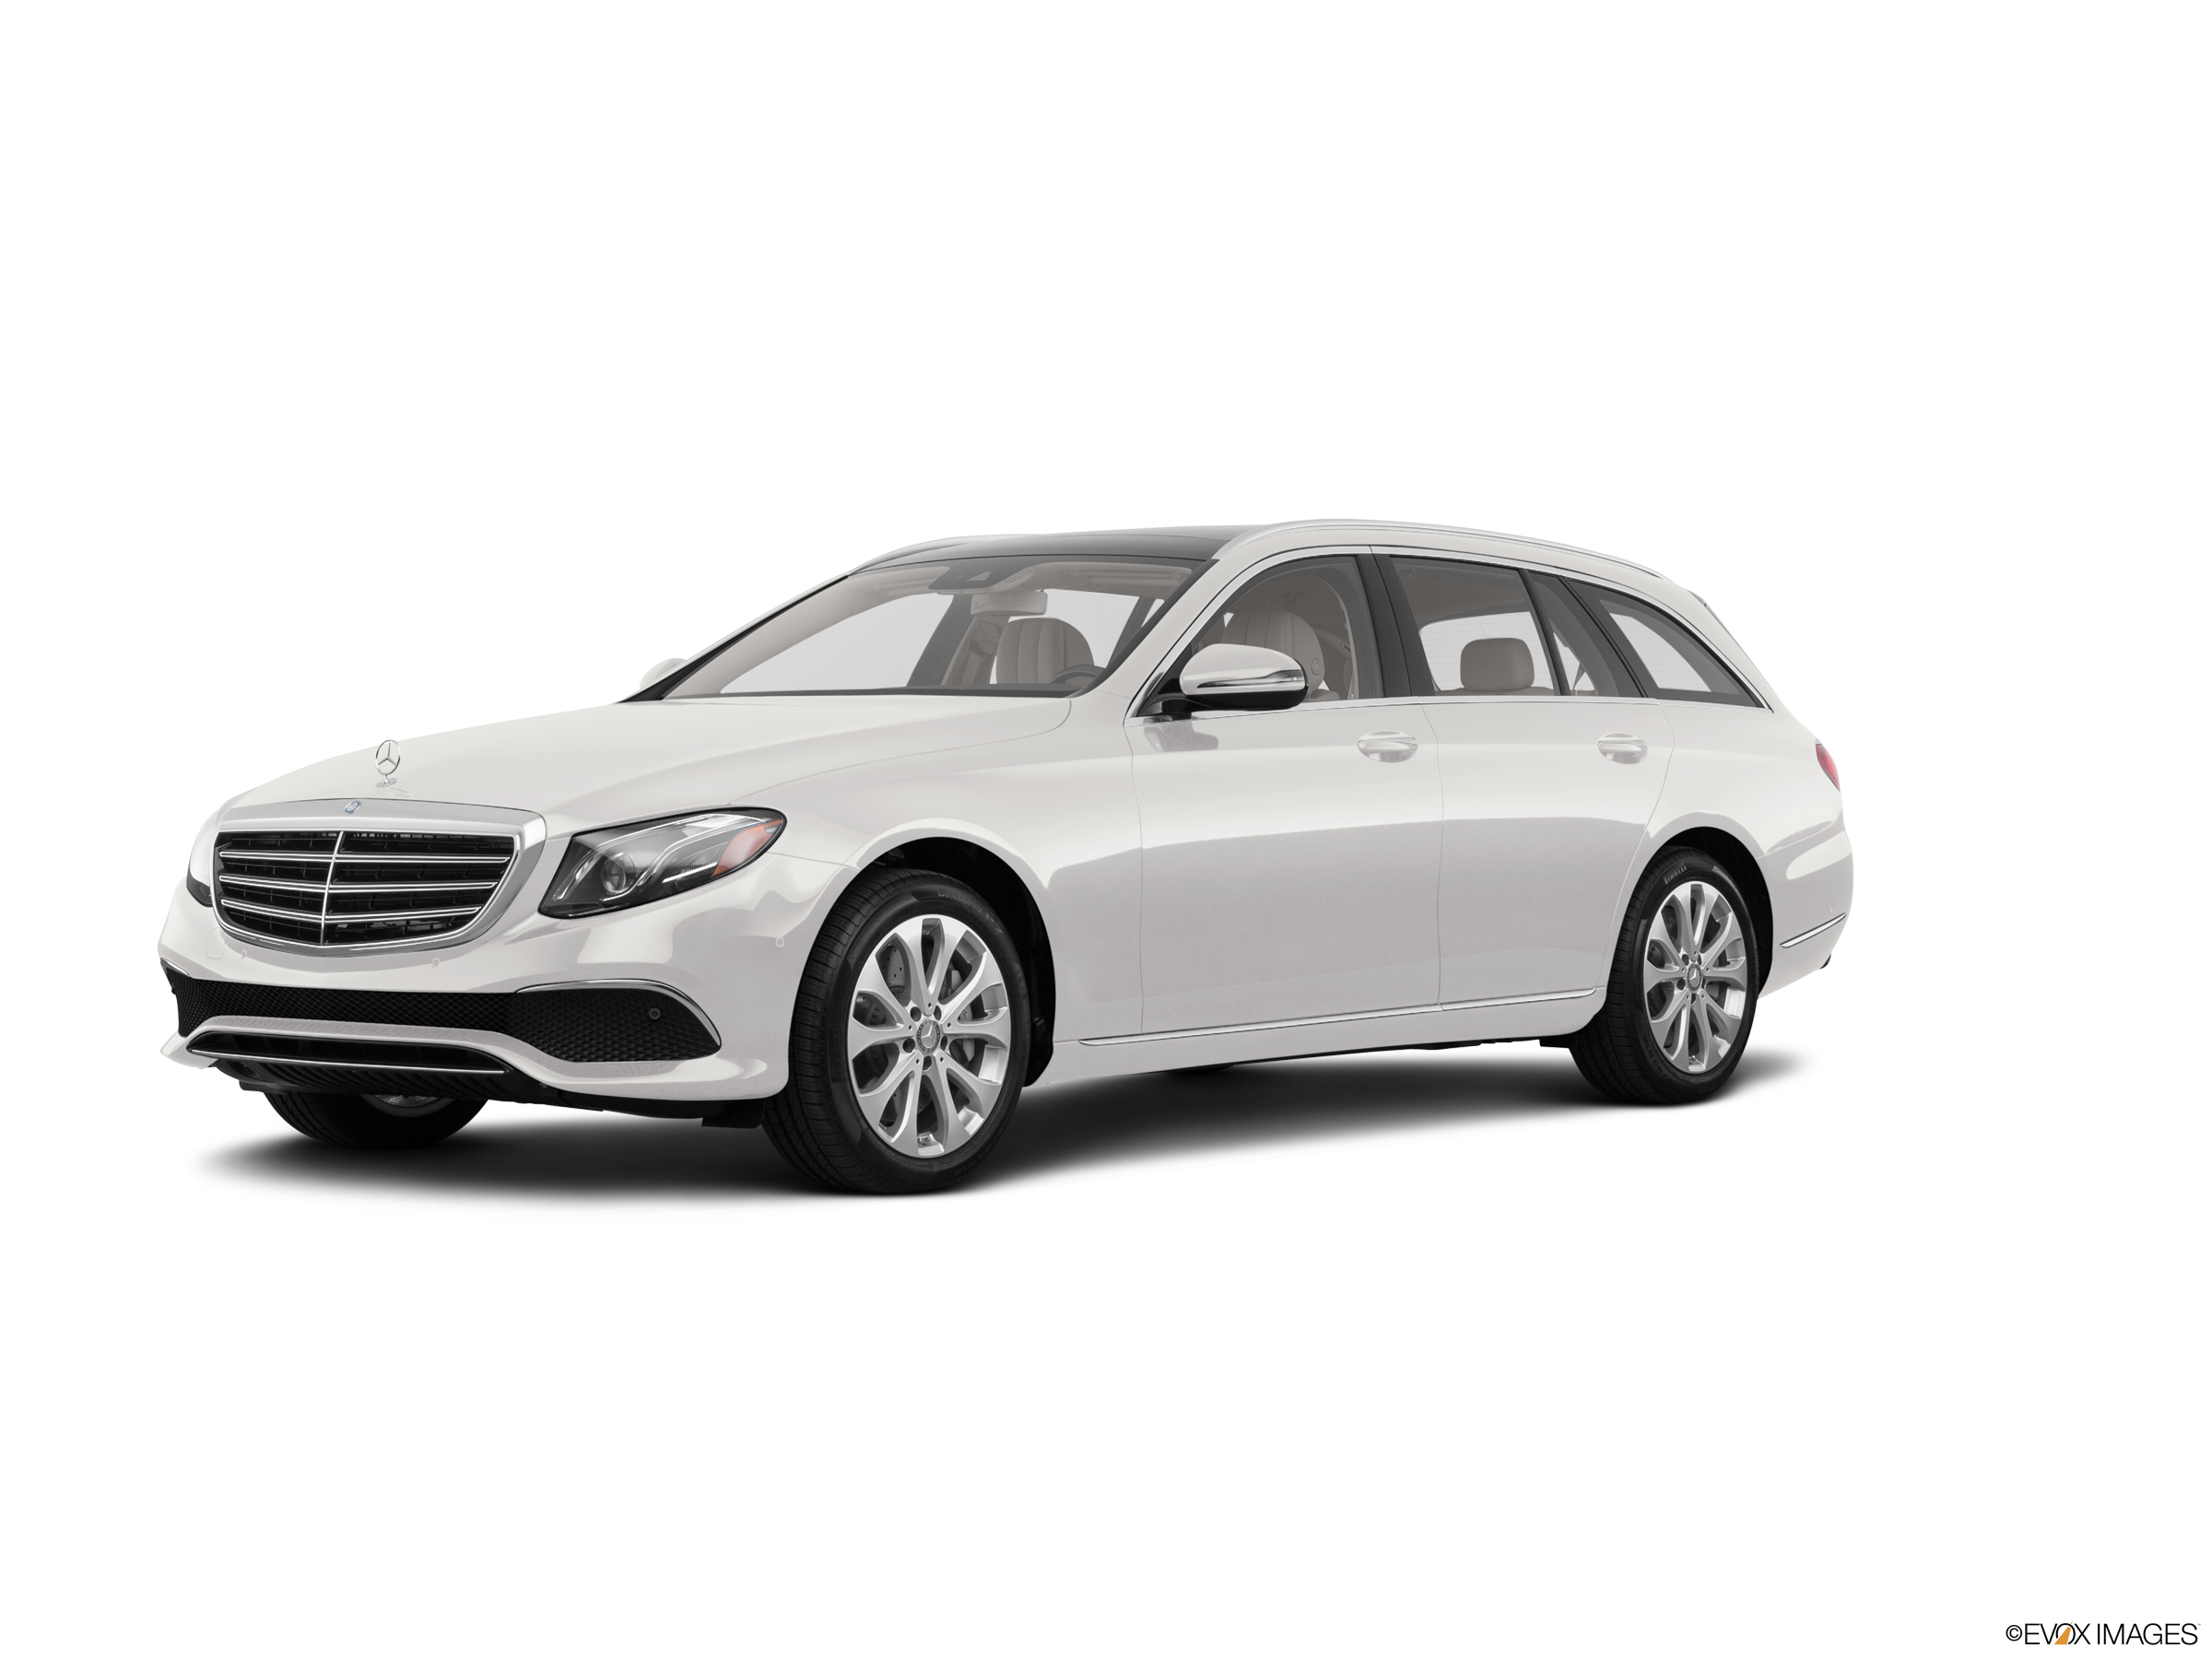 Most Popular Wagons of 2018 - 2018 Mercedes-Benz E-Class